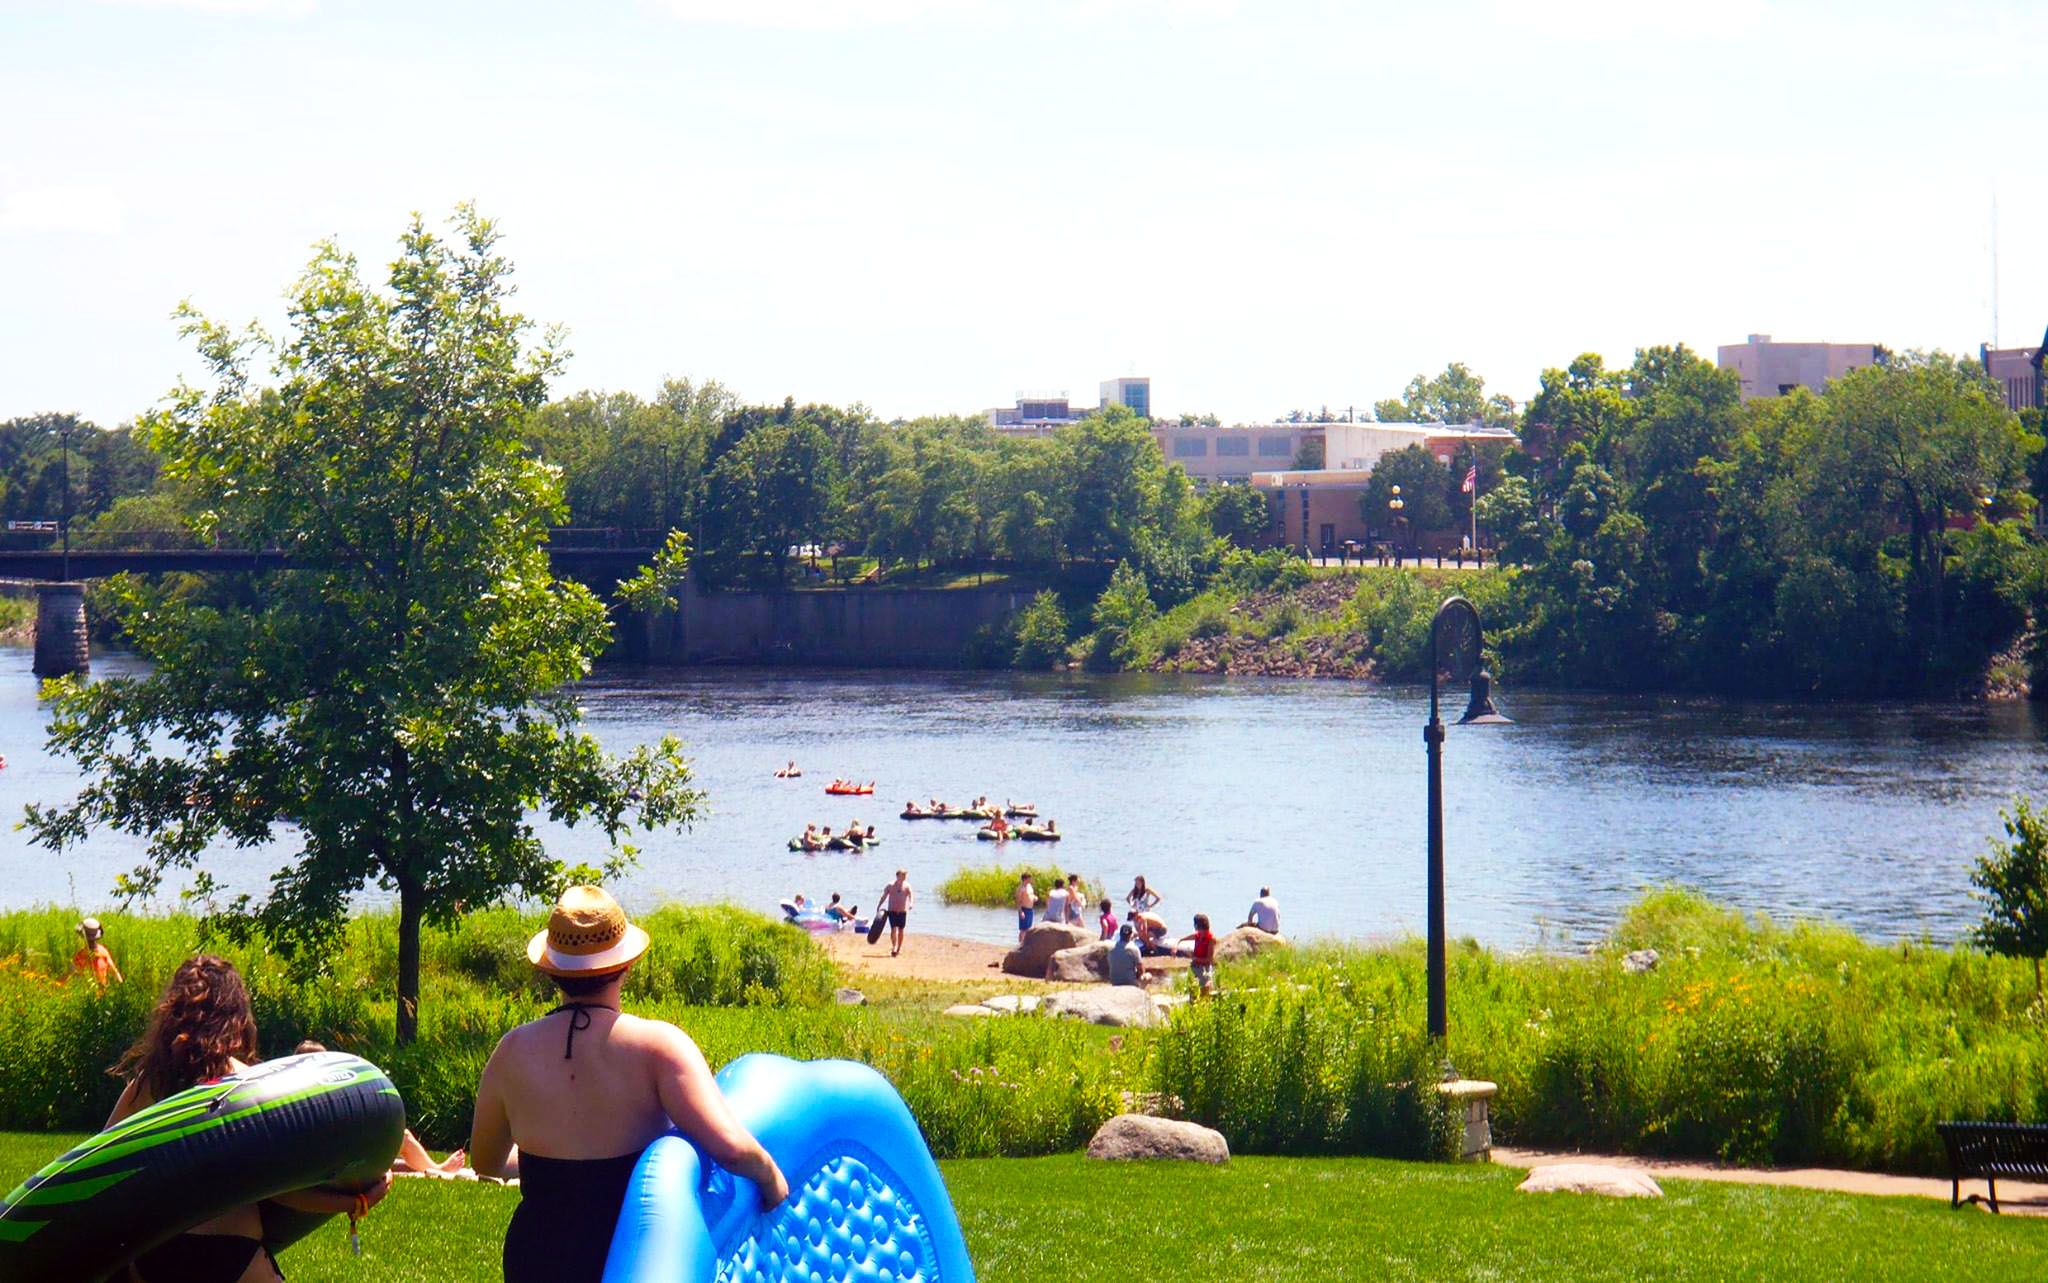 Floating In Eau Claire - Photo by: Megan Strop